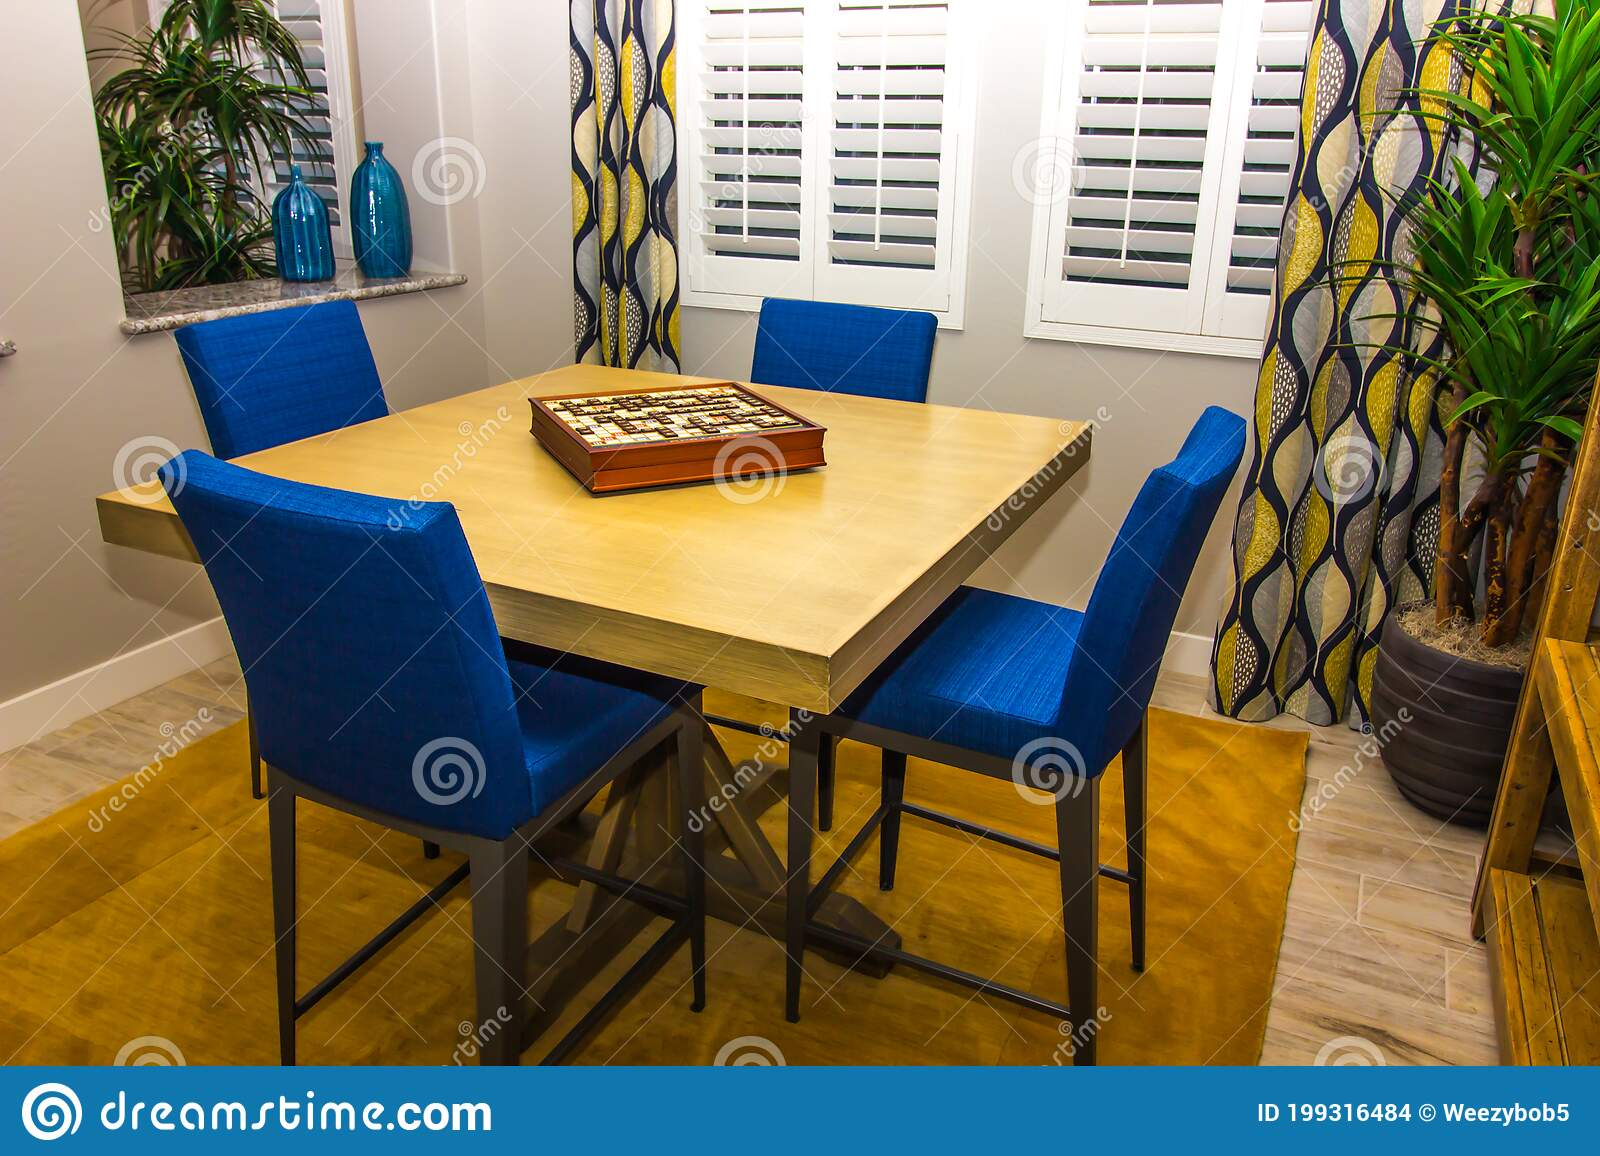 Modern Game Table With High Back Chairs Stock Photo Image Of Windows Blue 199316484